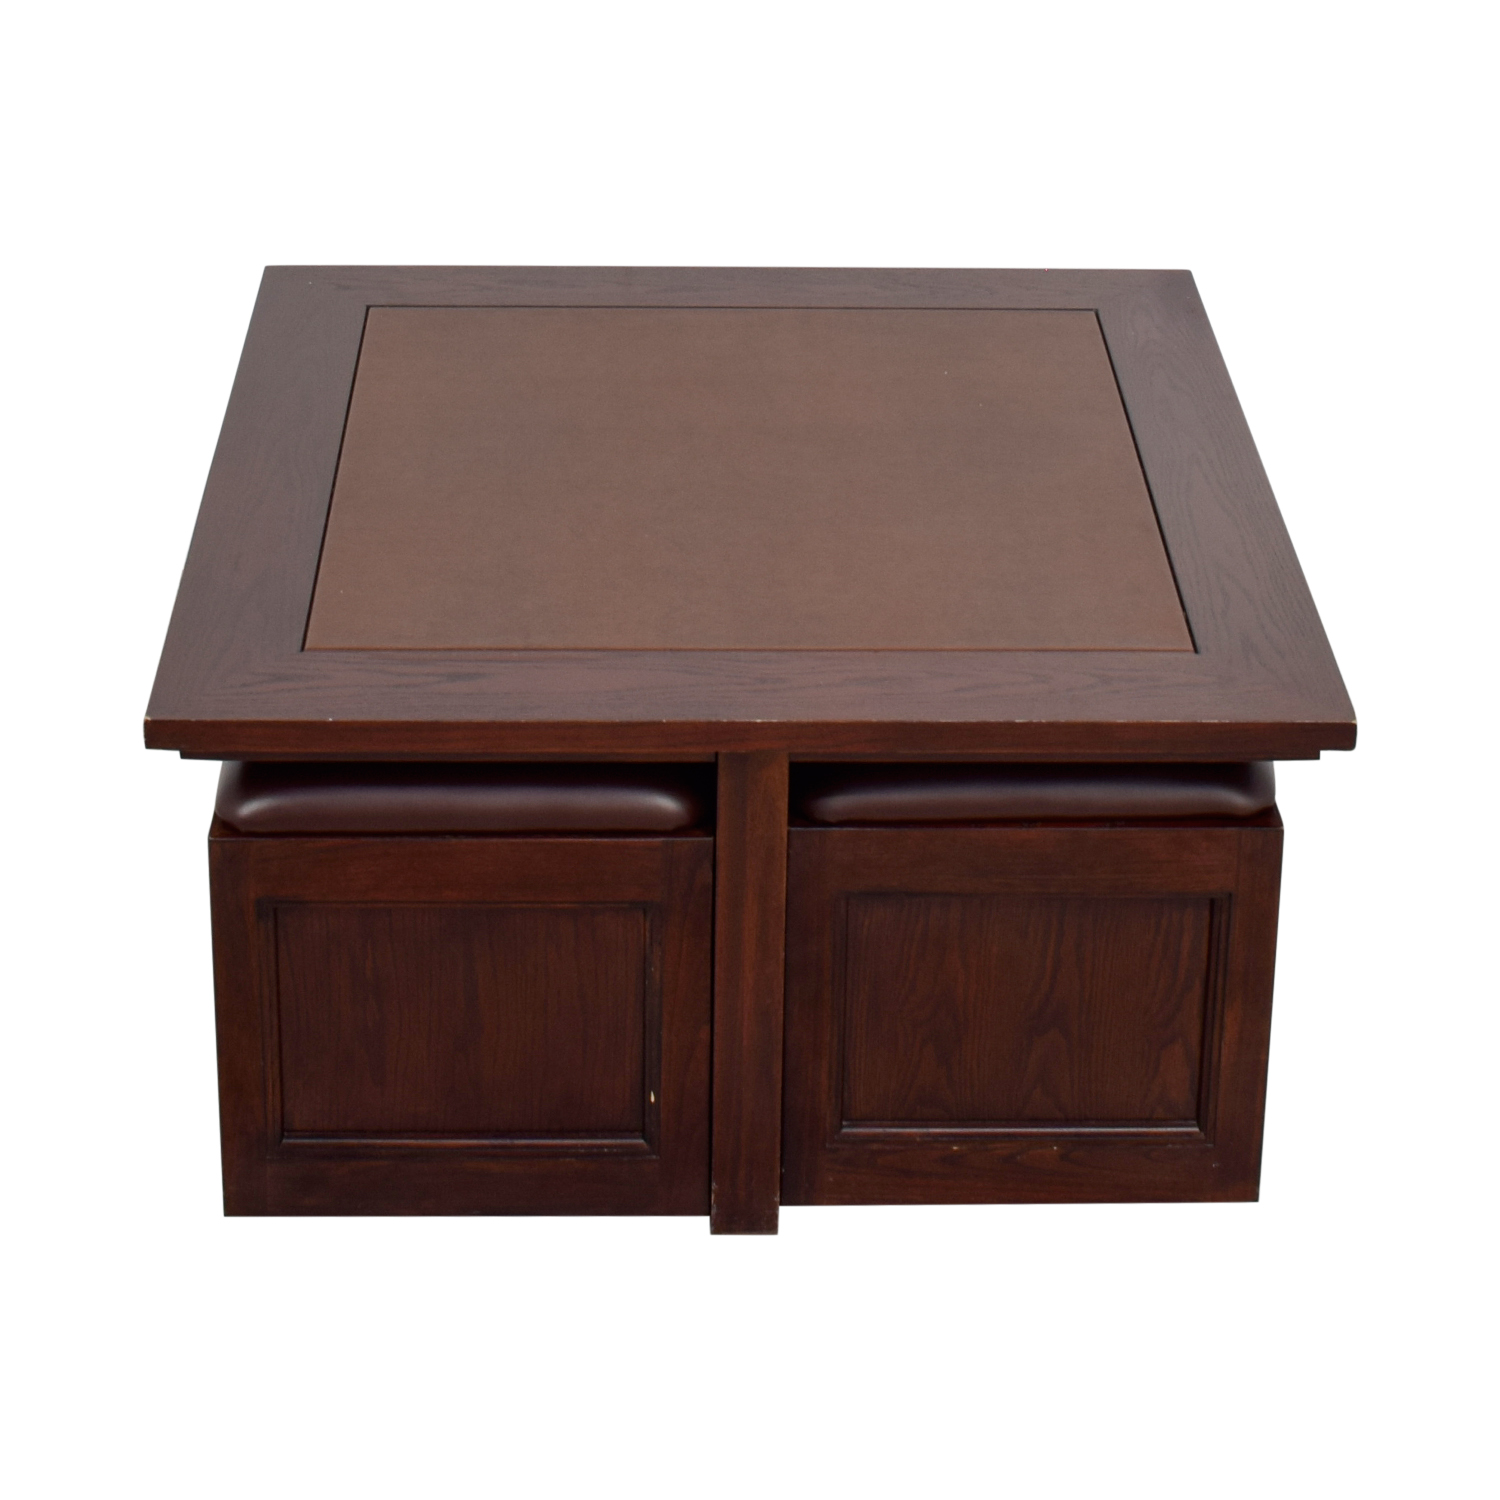 Macy's Macy's Cherry Wood Square Coffee Table with Seat Storage Coffee Tables